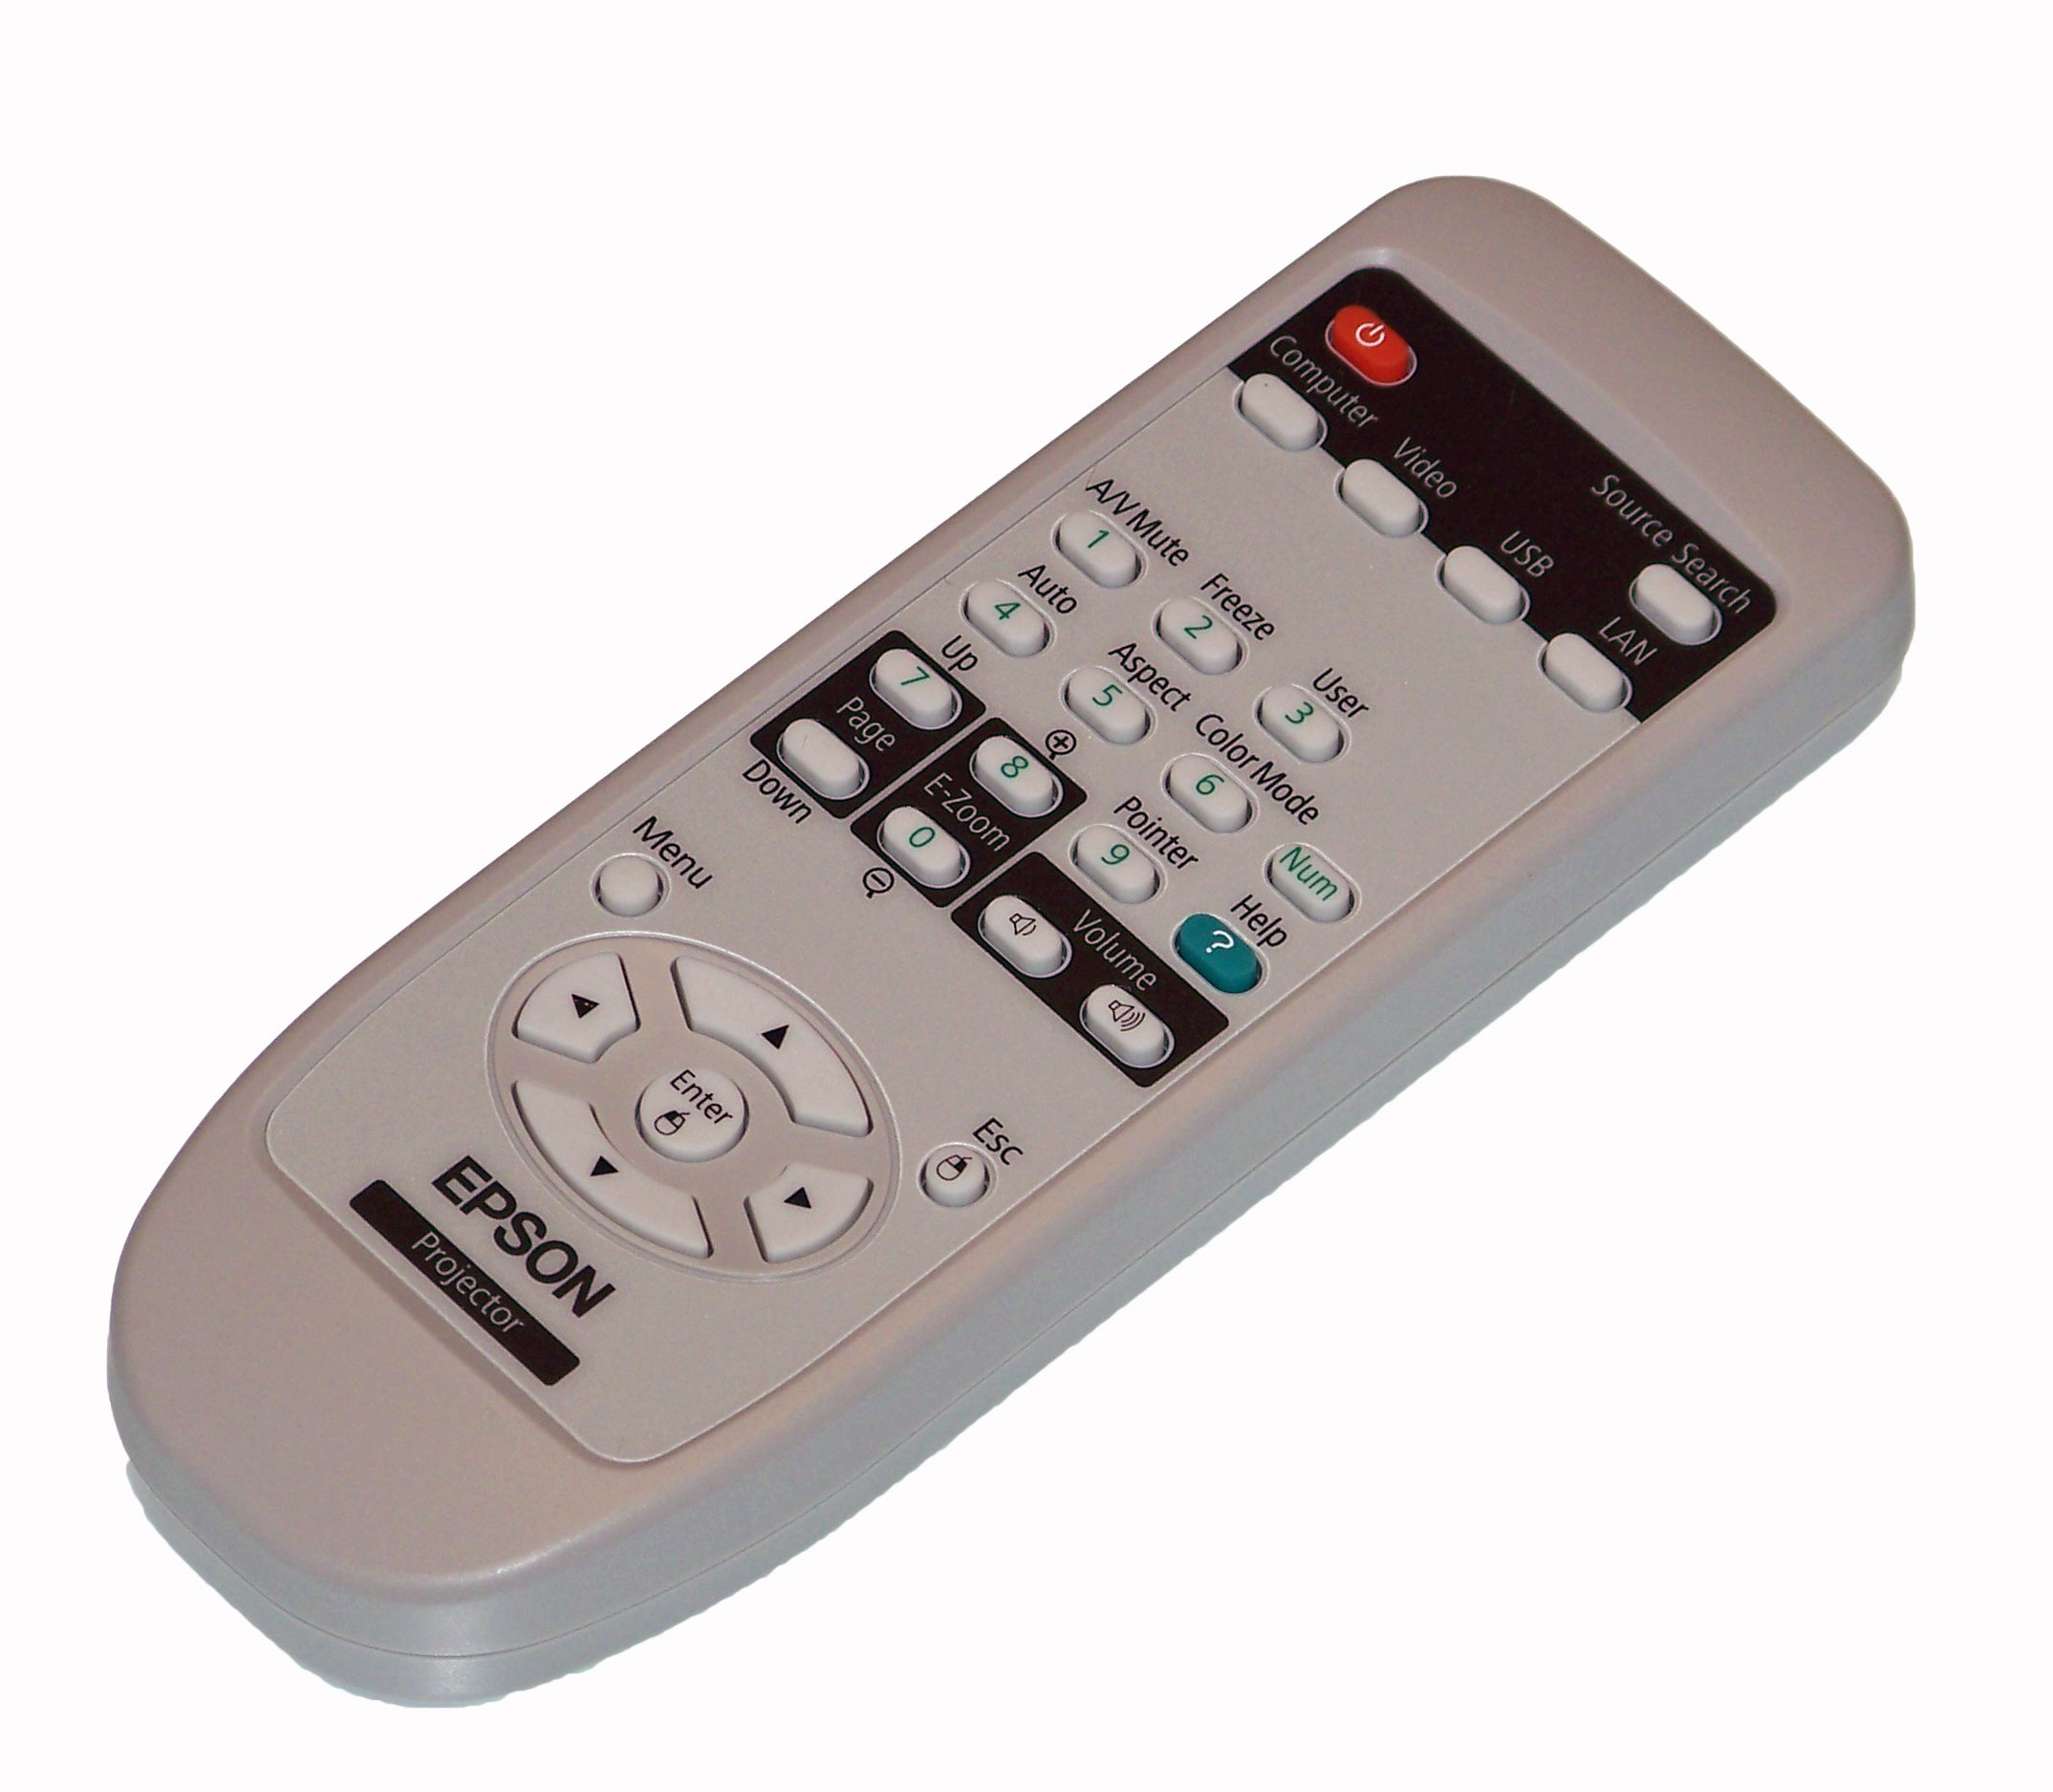 OEM Epson Projector Remote Control Shipped With Epson Models H357A, H381A, H382A, H383A